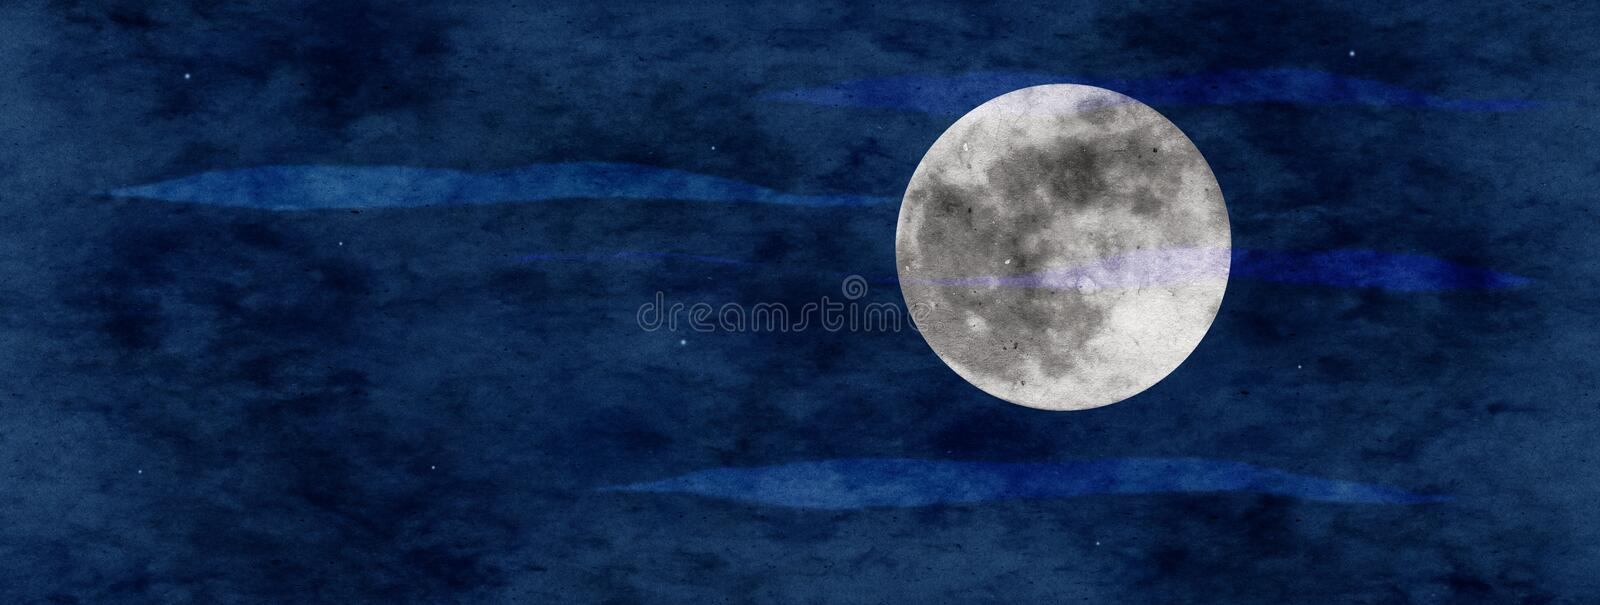 Panoramic Moonscape Royalty Free Stock Image